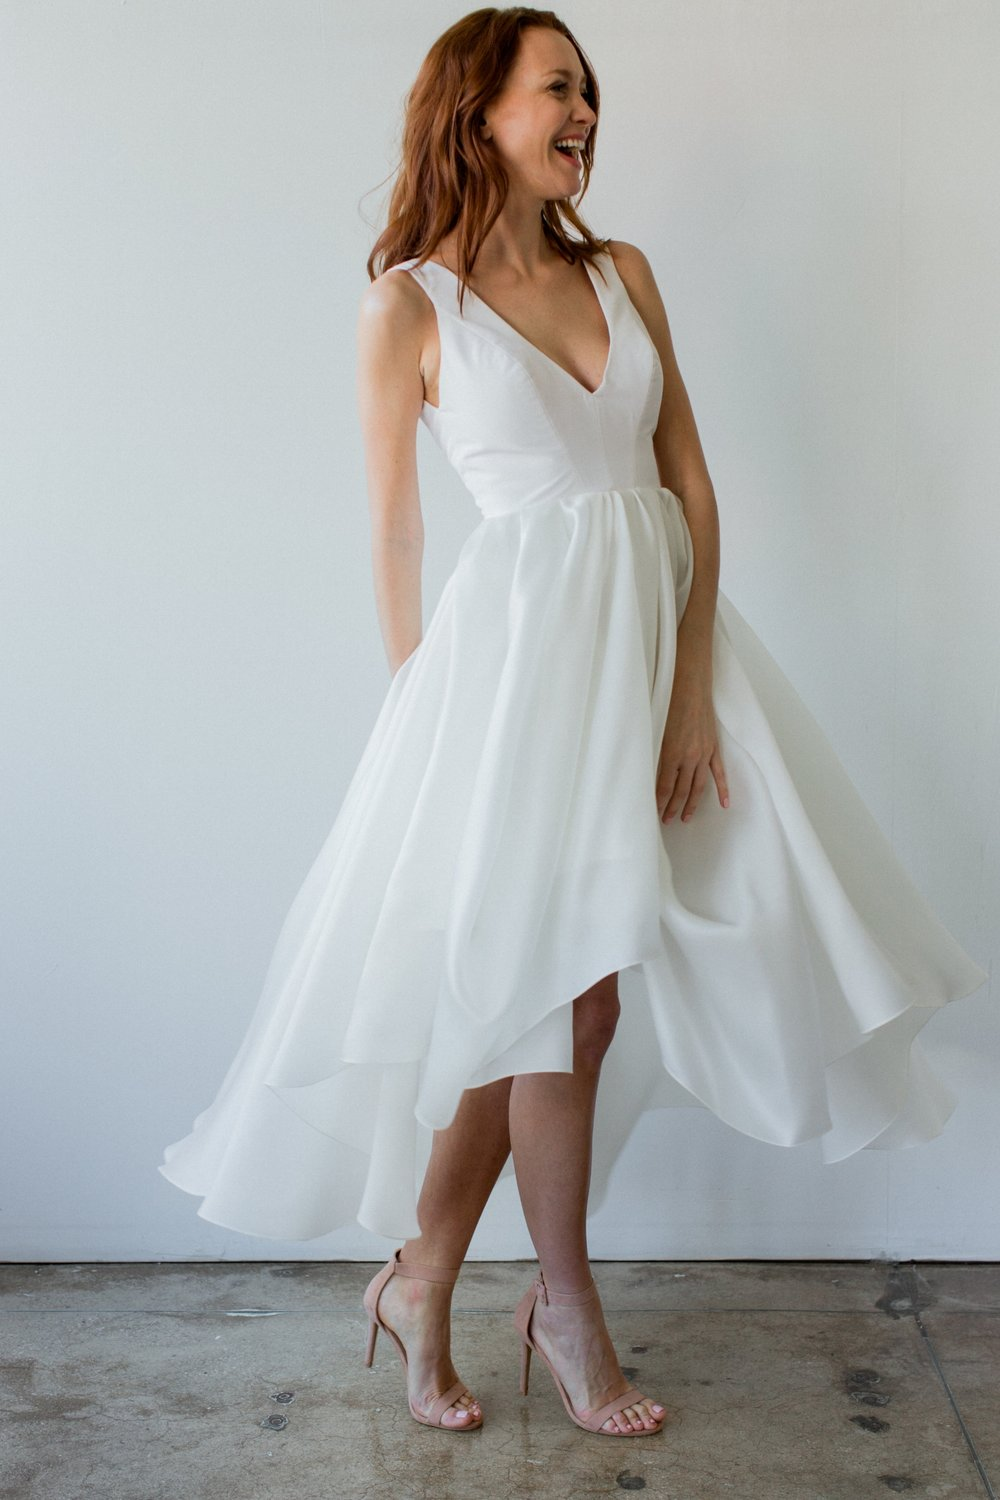 Generous Party White Dress Pictures Inspiration - Wedding Ideas ...